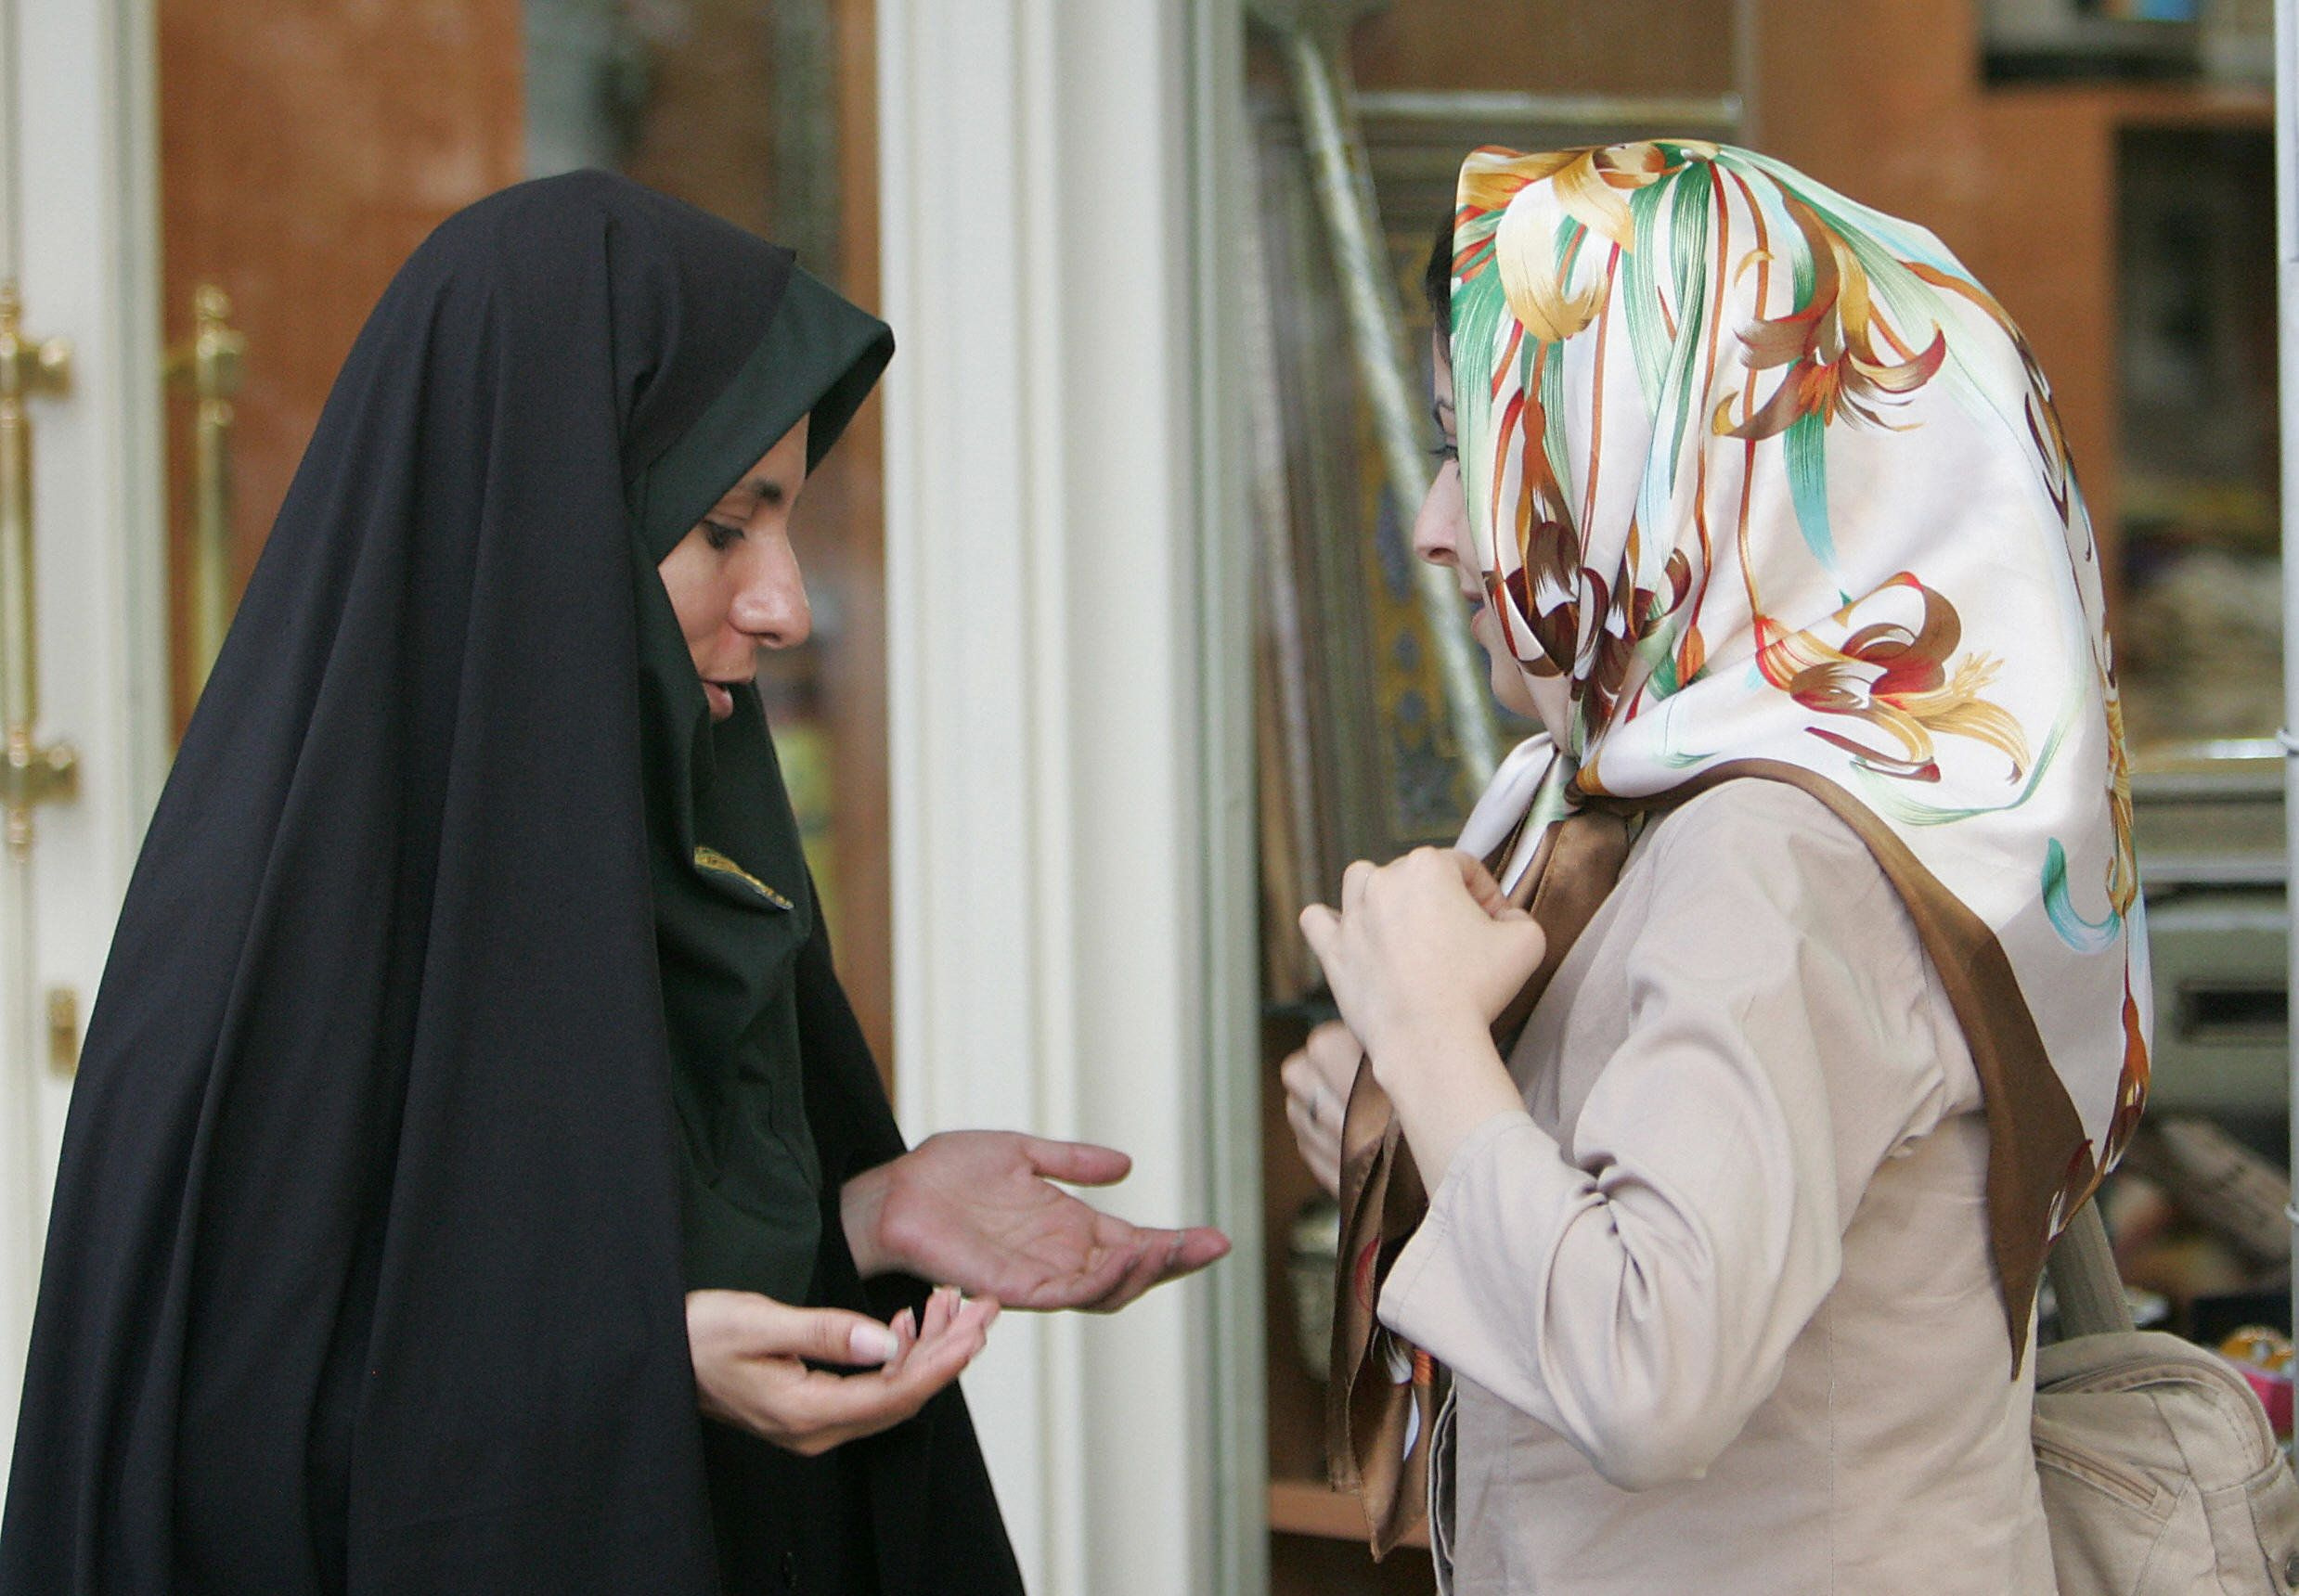 A female Iranian police officer (L) speaks with a woman regarding her clothing during a 2007 crackdown...